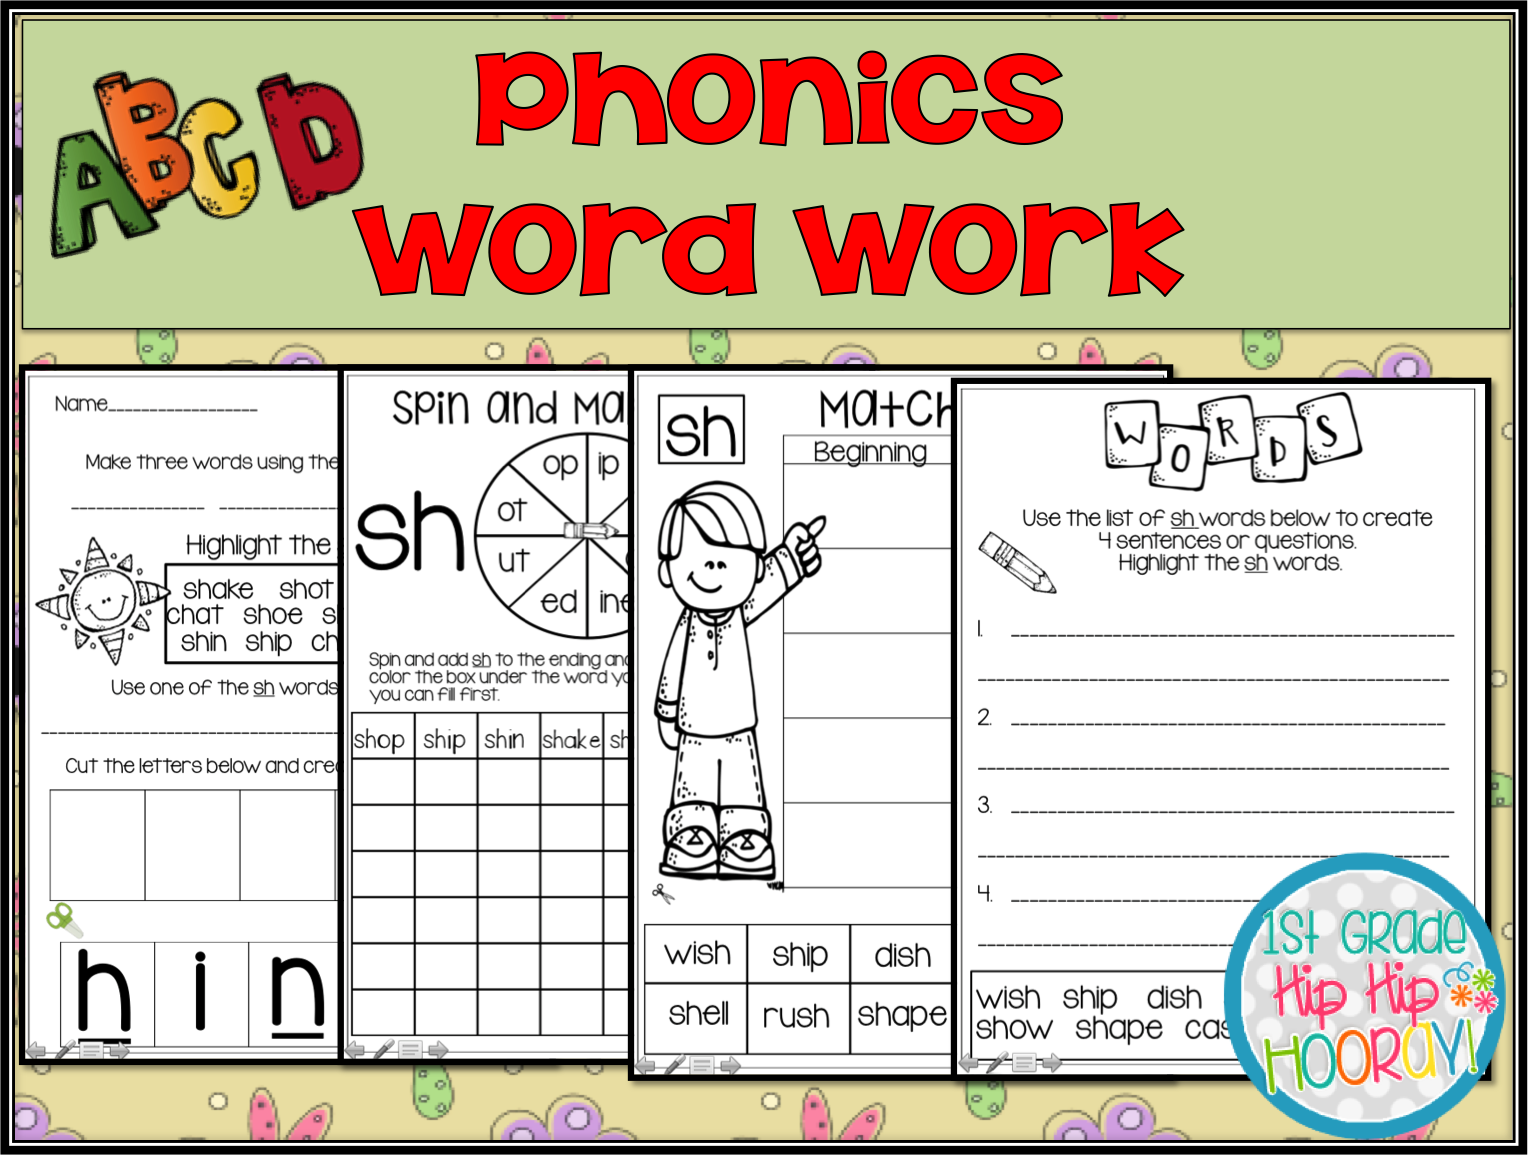 1st Grade Hip Hip Hooray Phonics Practice Blends Digraphs Vowel Teams And More